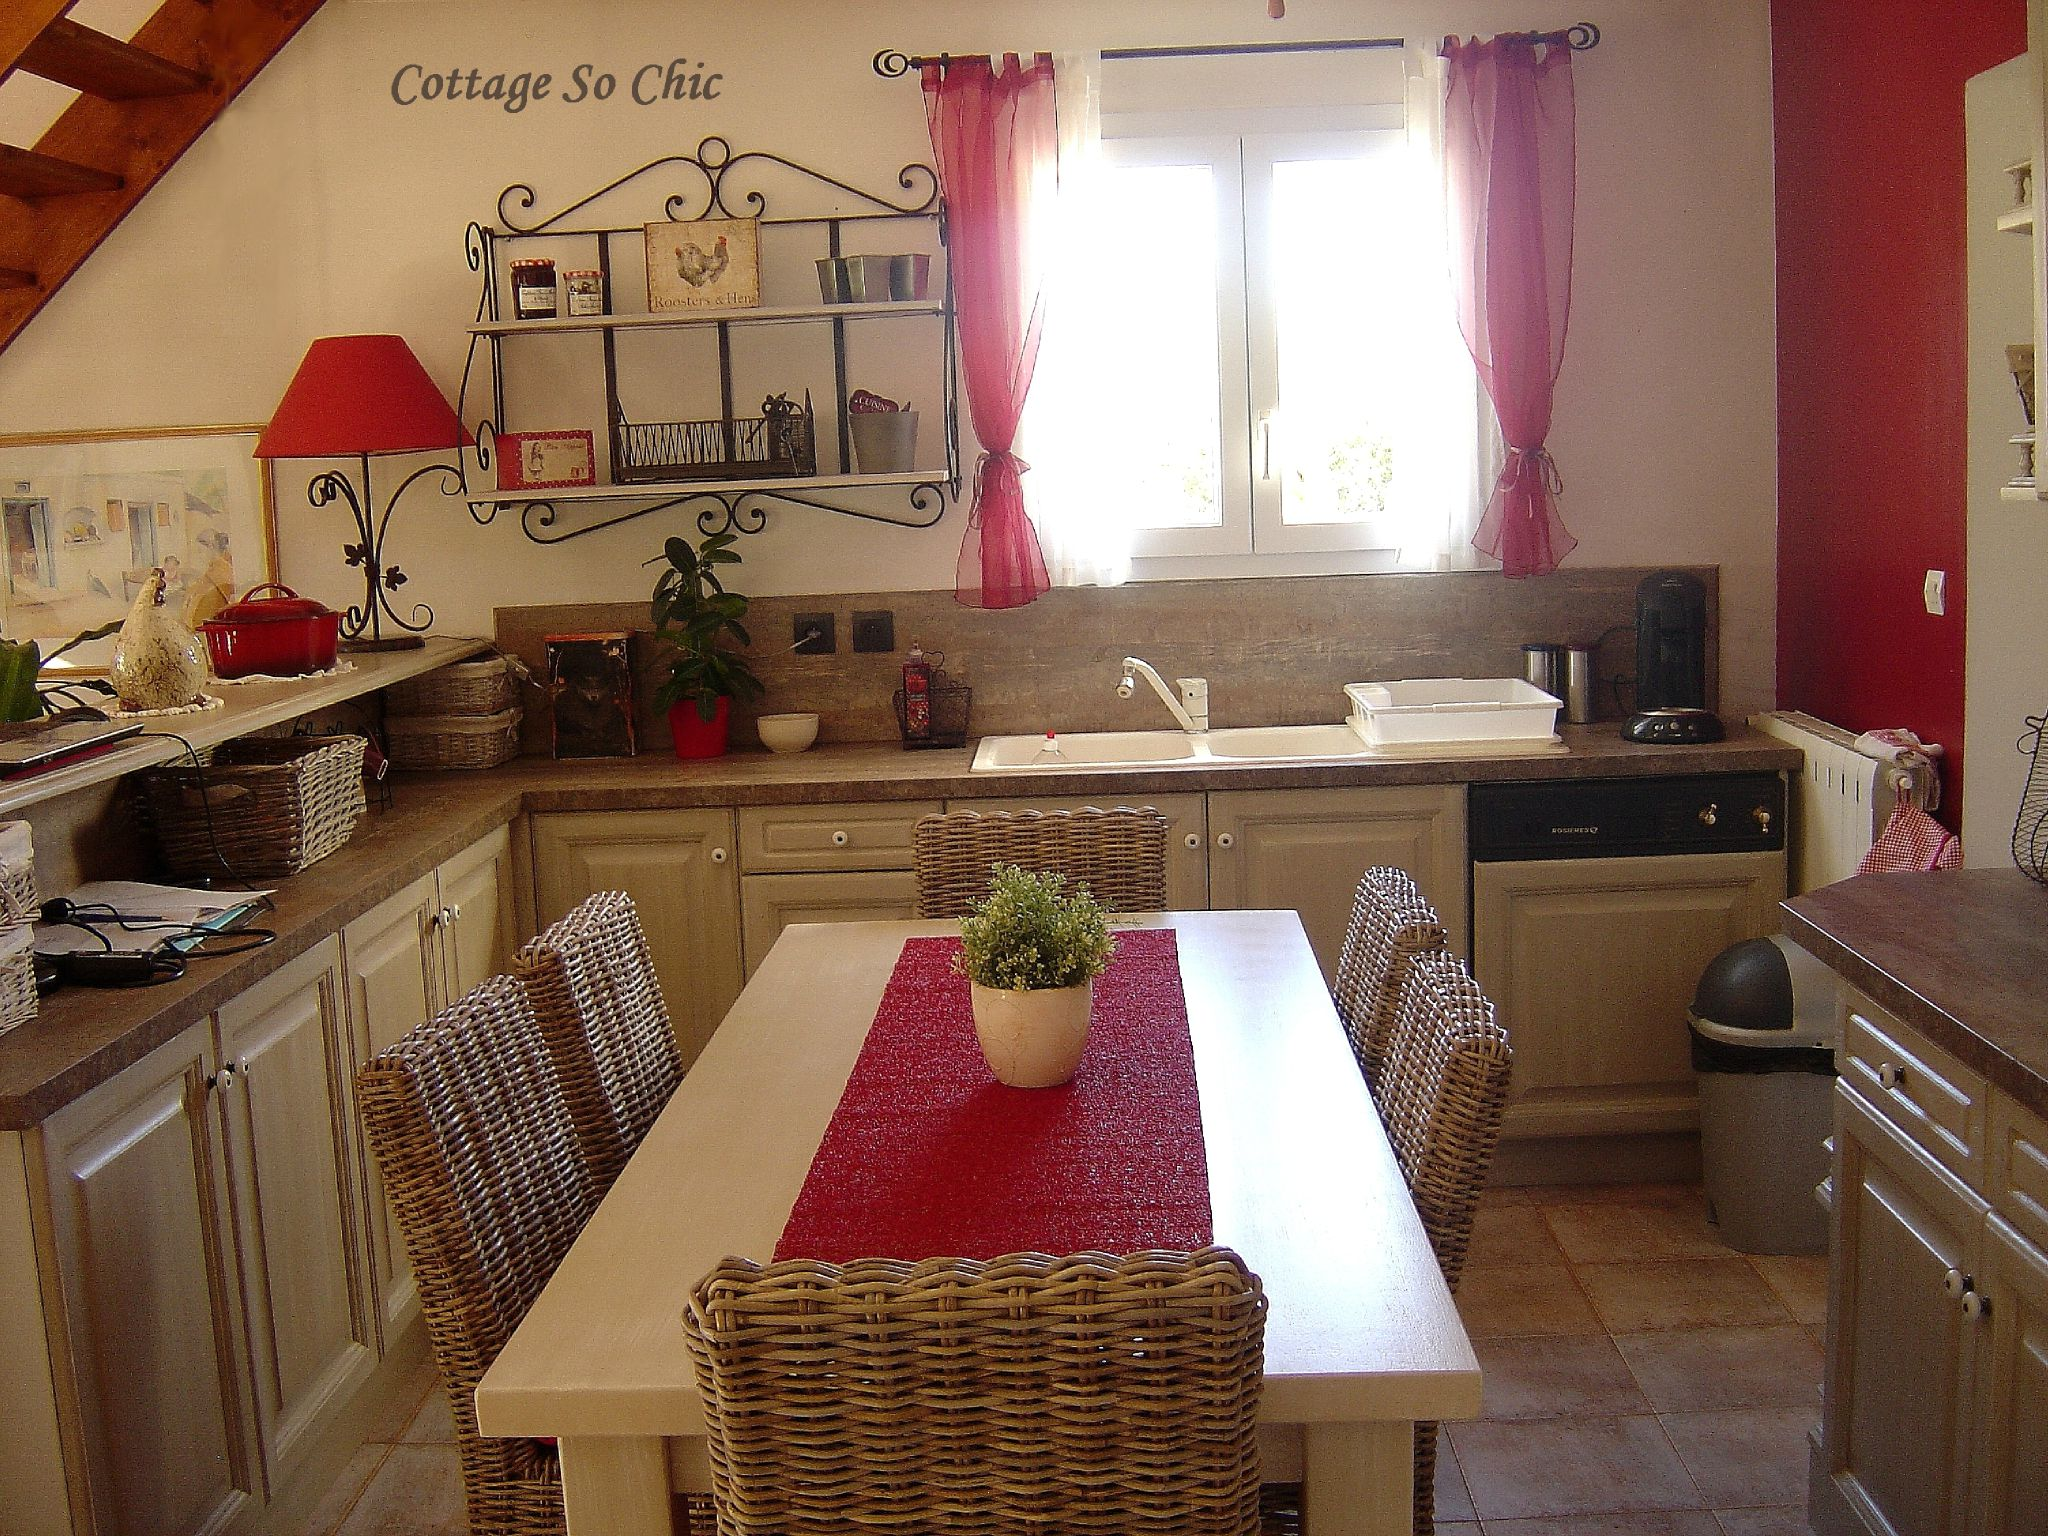 Deco Cuisine Campagne Chic Esprit Campagne Chic Cottage So Chic